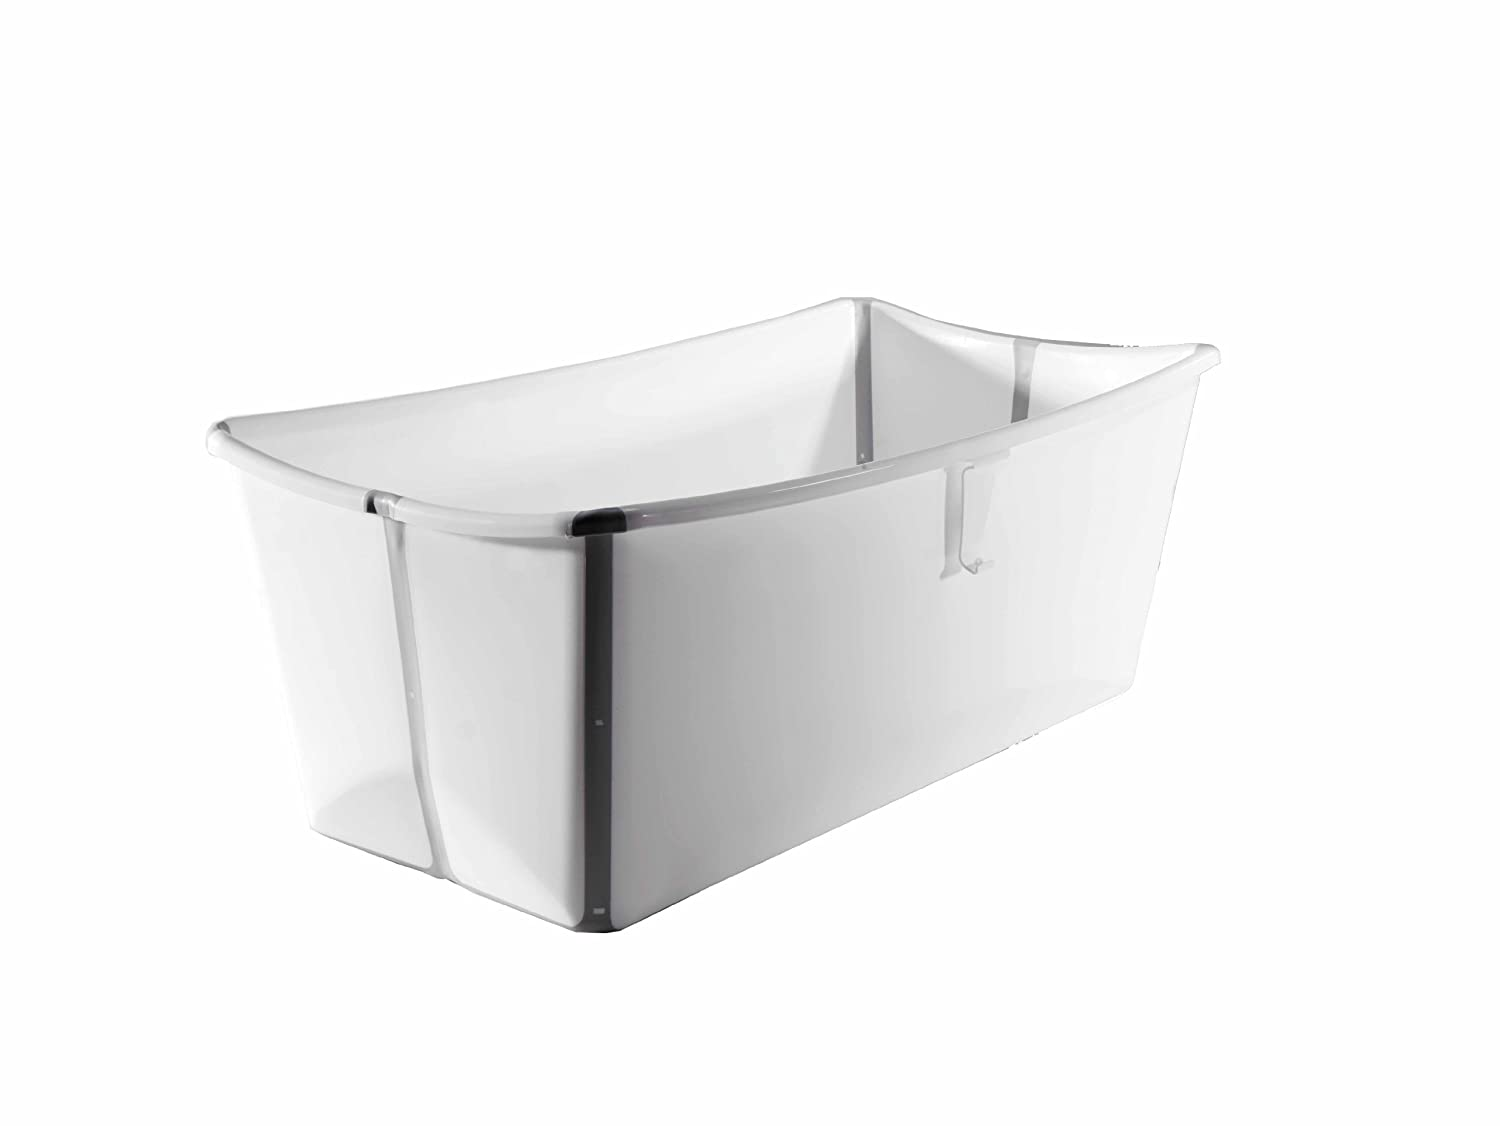 Amazon.com : Stokke : Baby Bathing Seats And Tubs : Baby